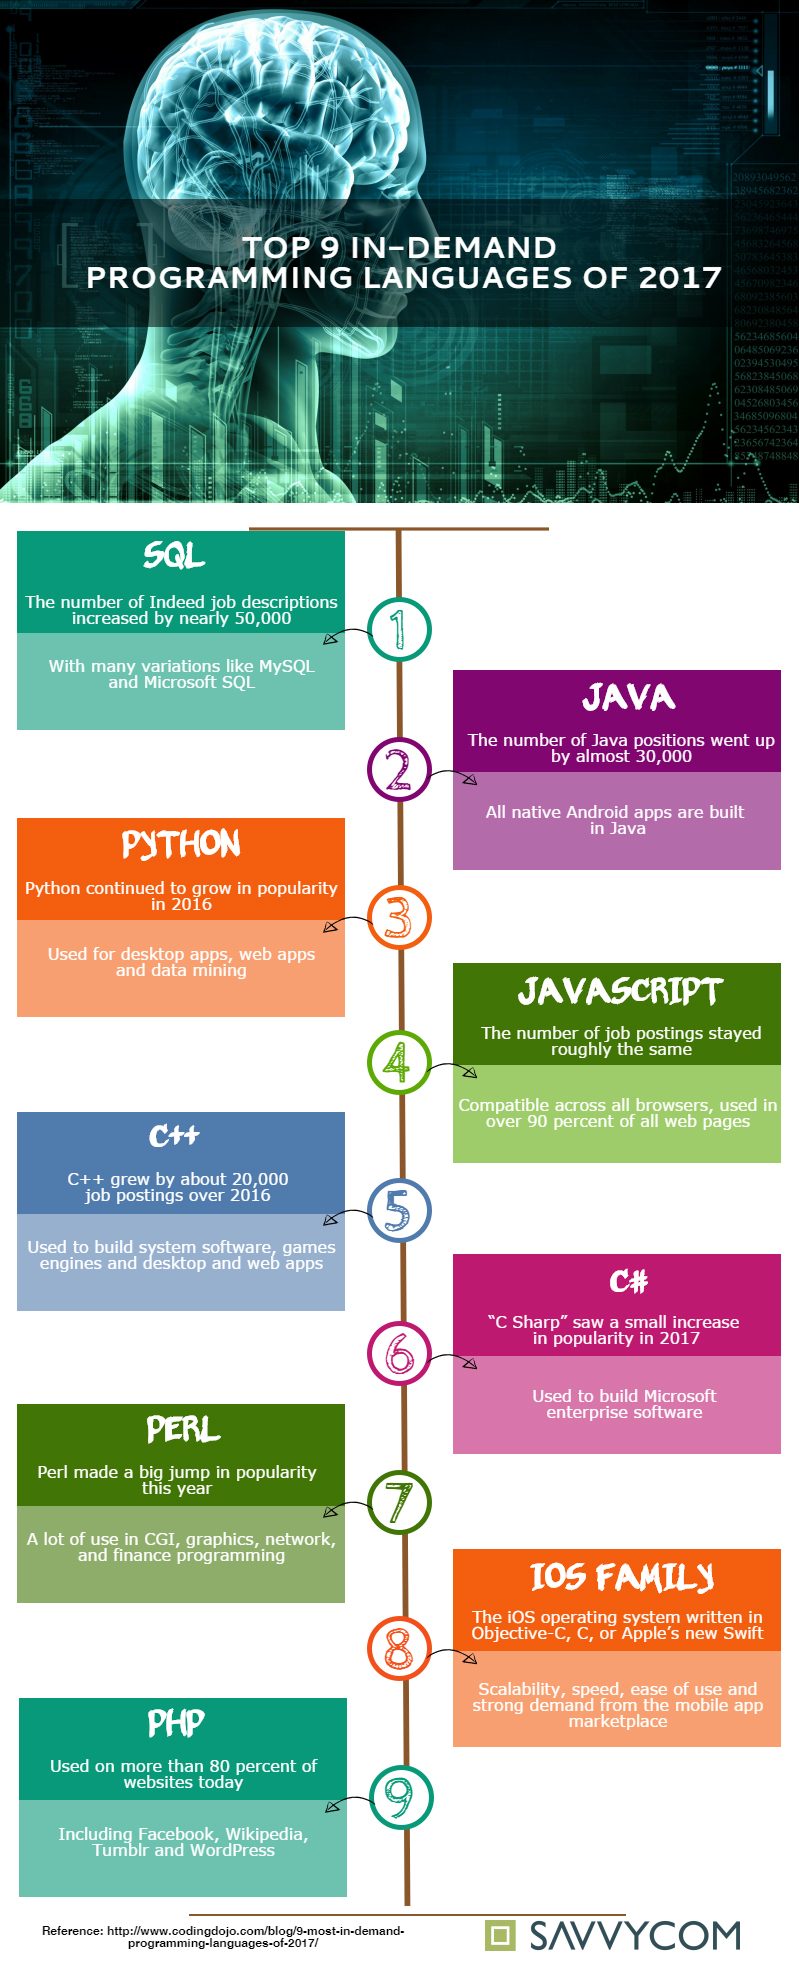 Top In-Demand Programming Languages of 2017